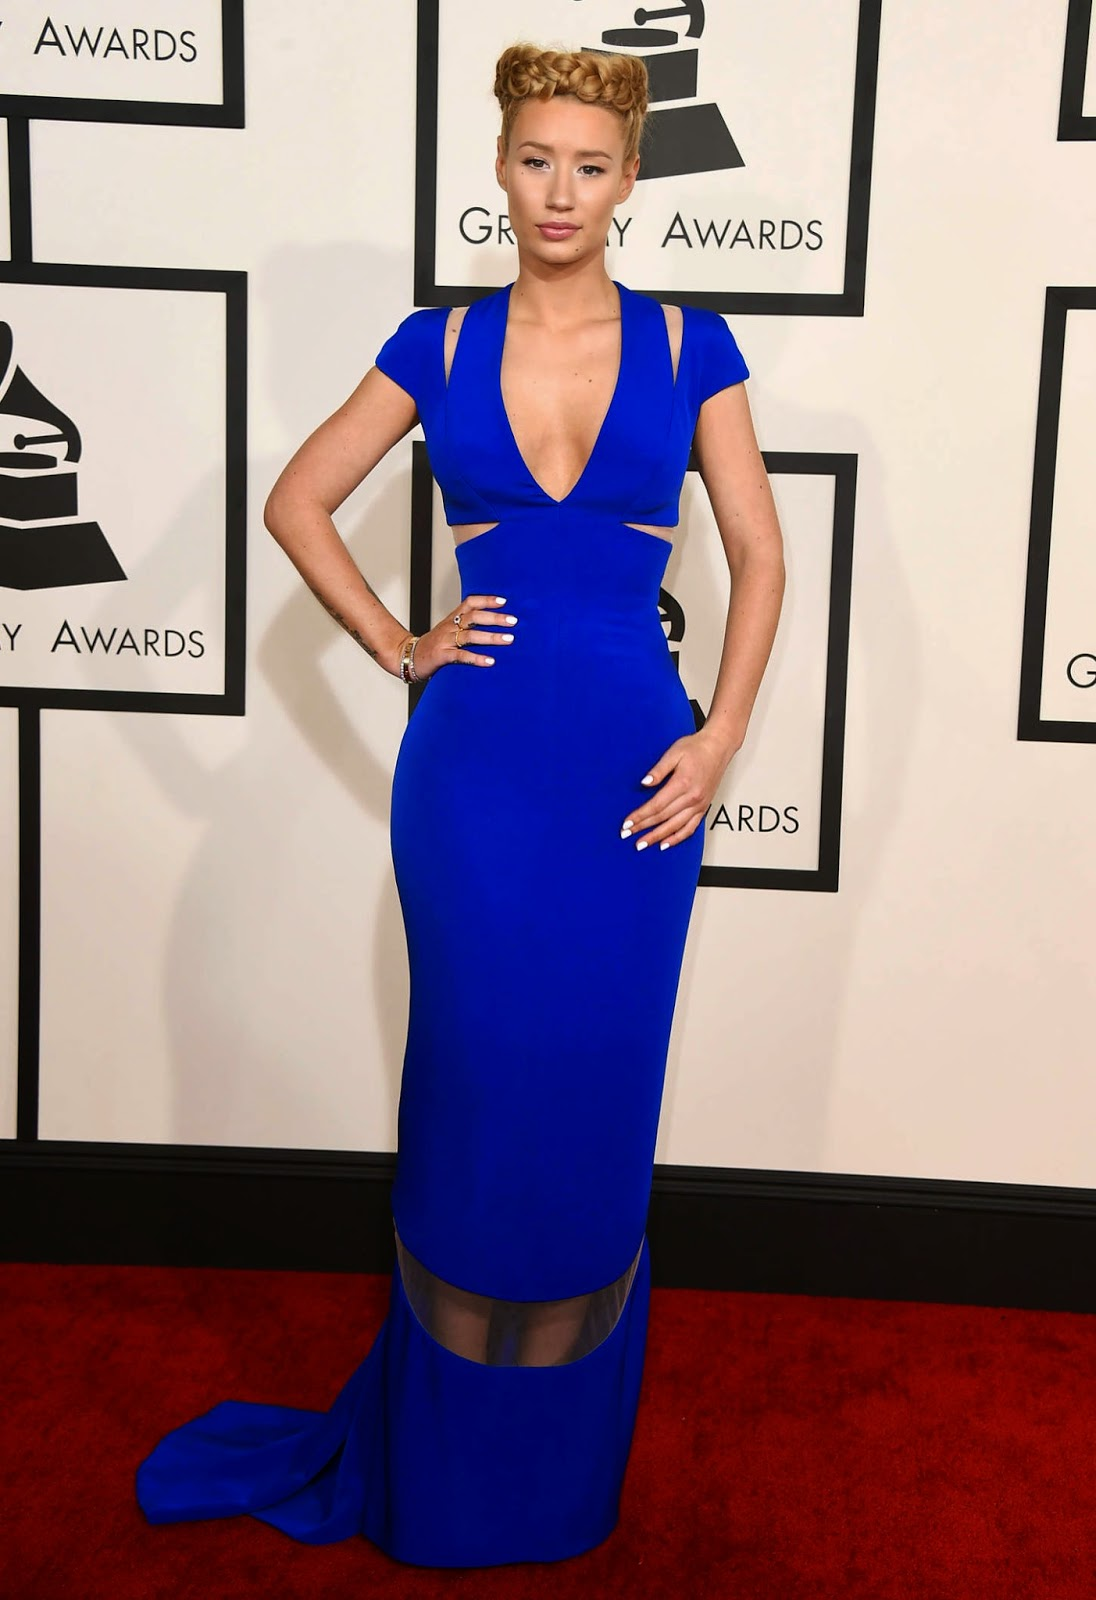 Iggy Azalea stuns in a blue Giorgio Armani dress at the 2015 Grammy Awards in LA